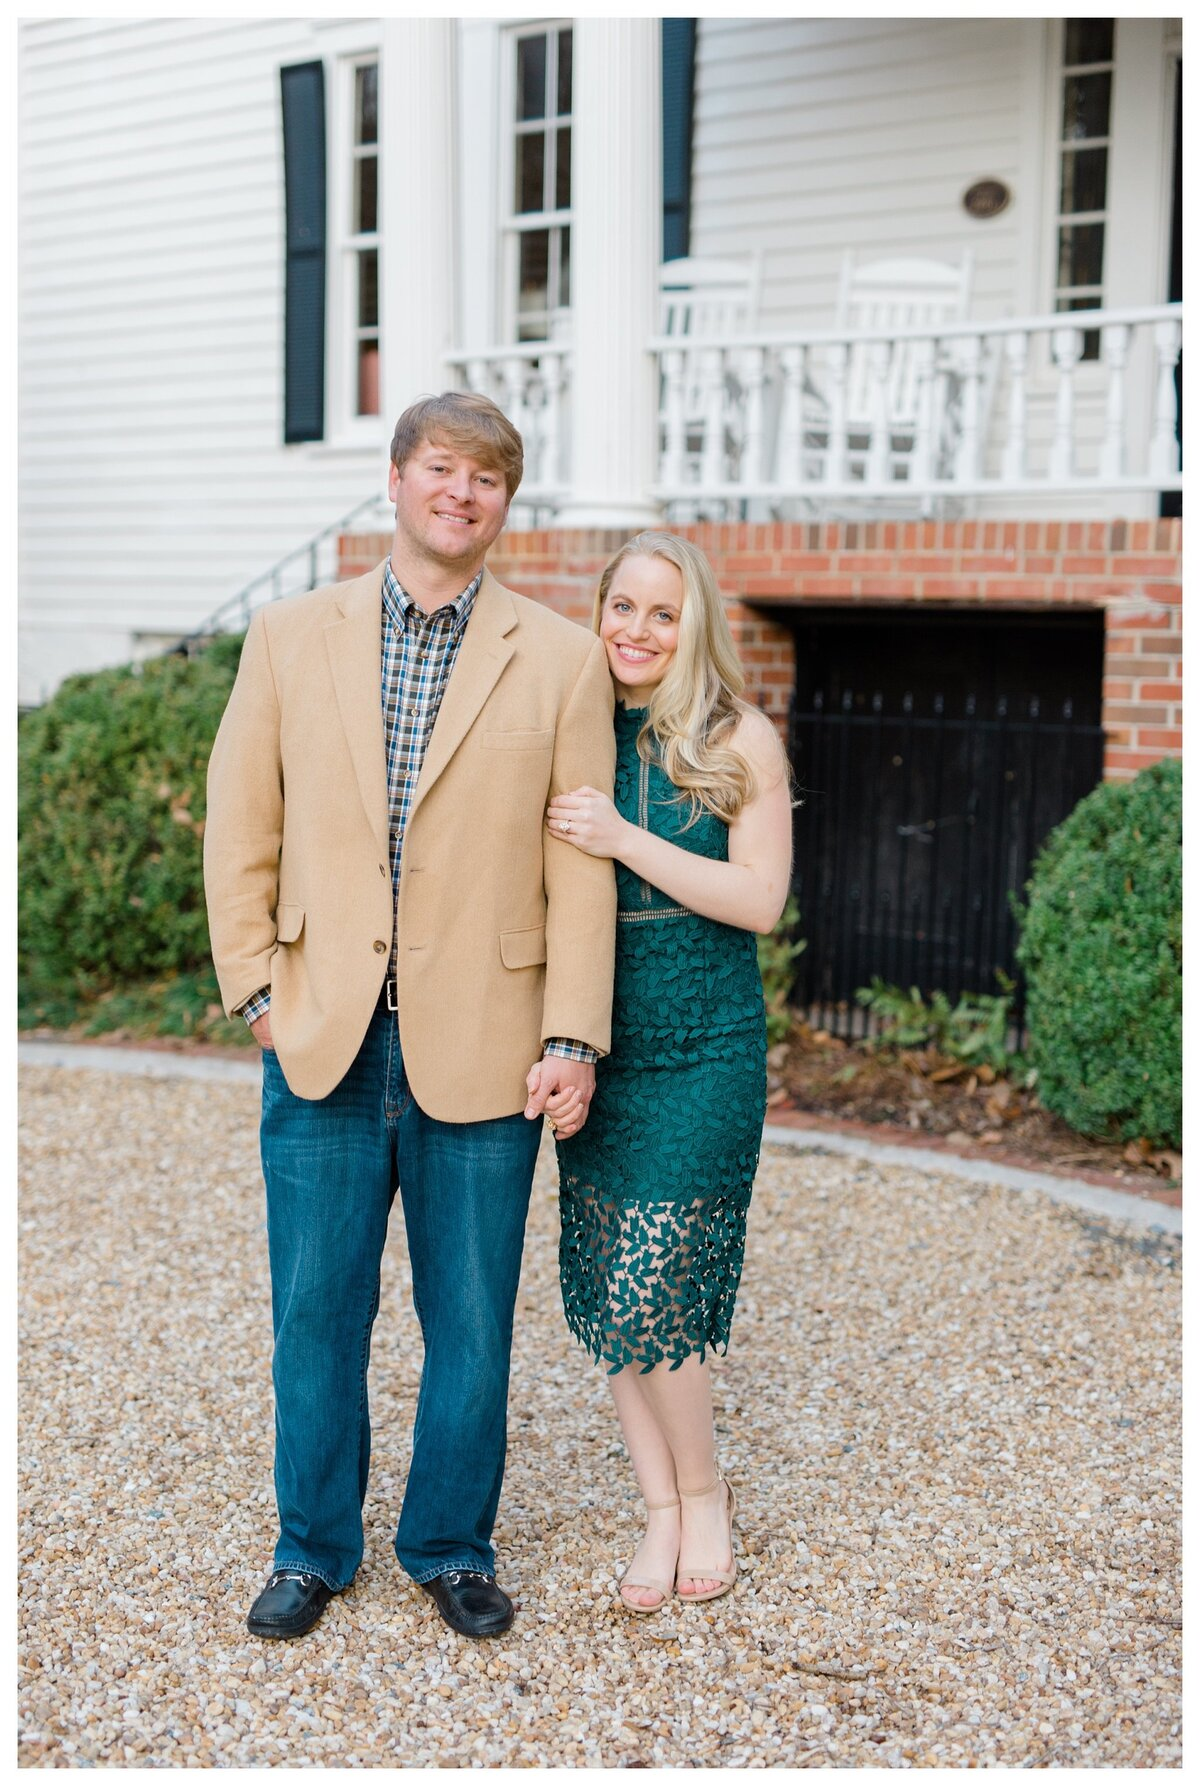 canady-engagements-atlanta-wedding-photographer-38